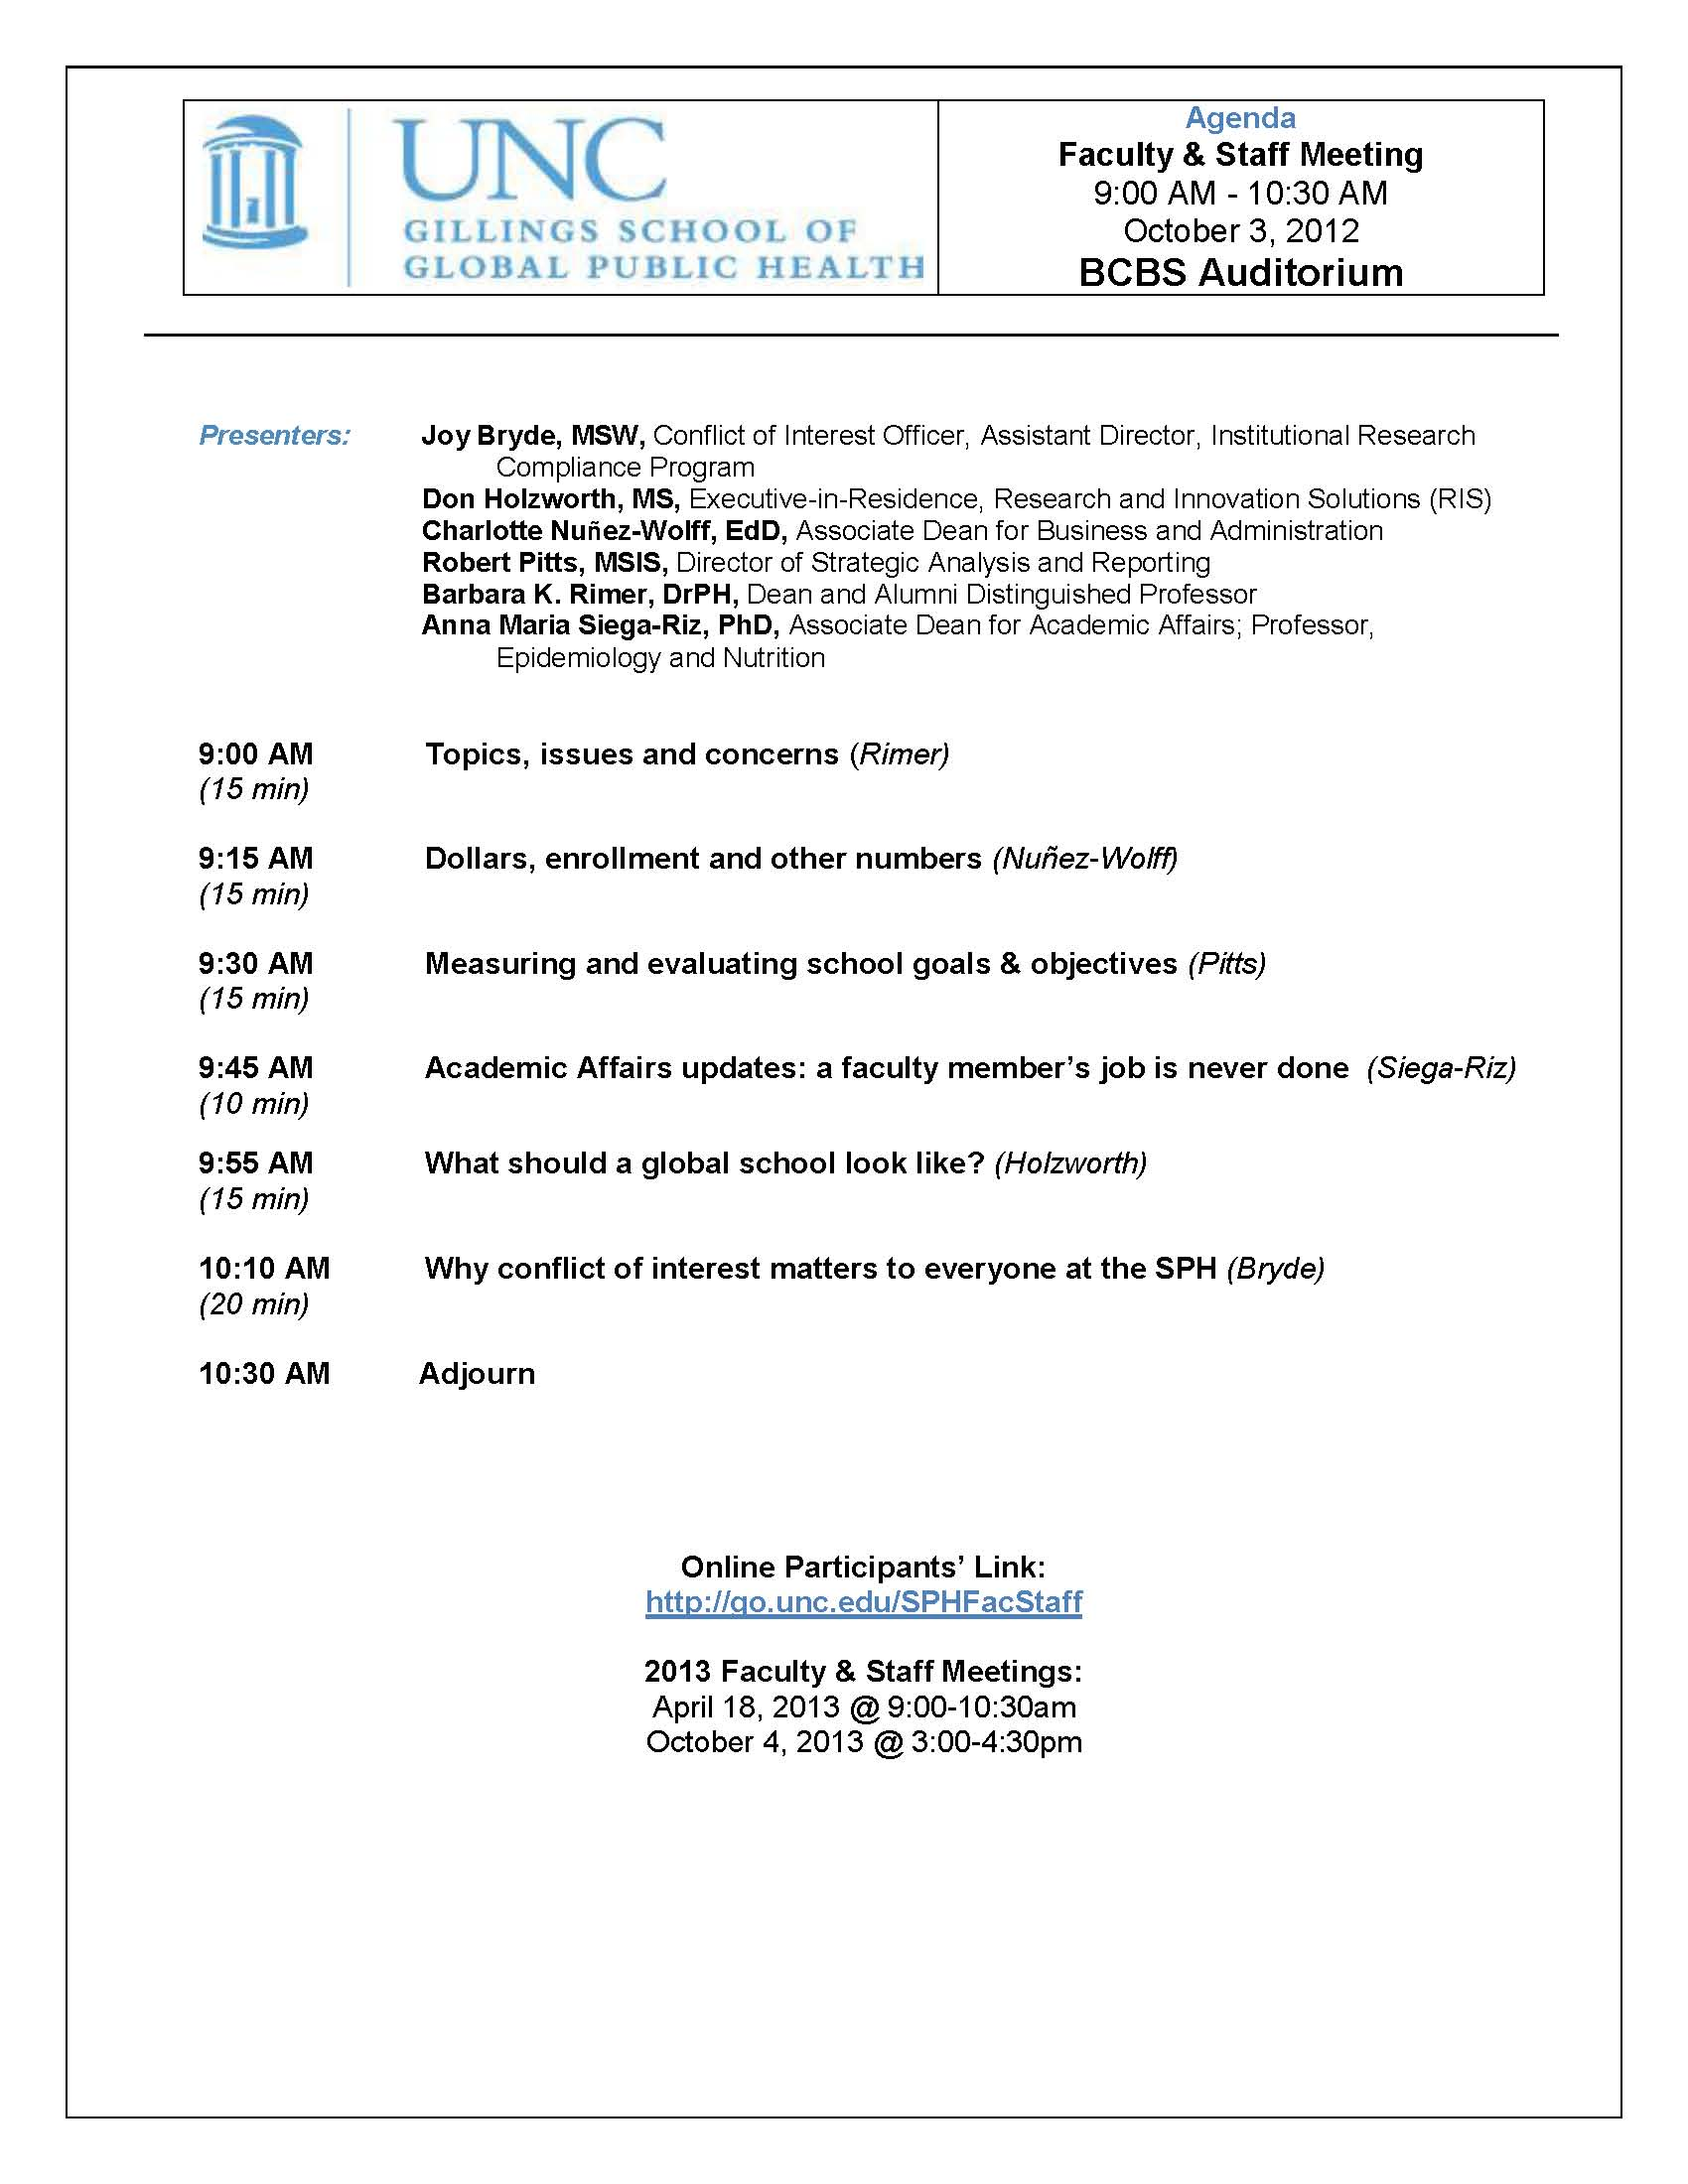 Faculty and Staff Meetings UNC Gillings School of Global Public – Meeting Agenda